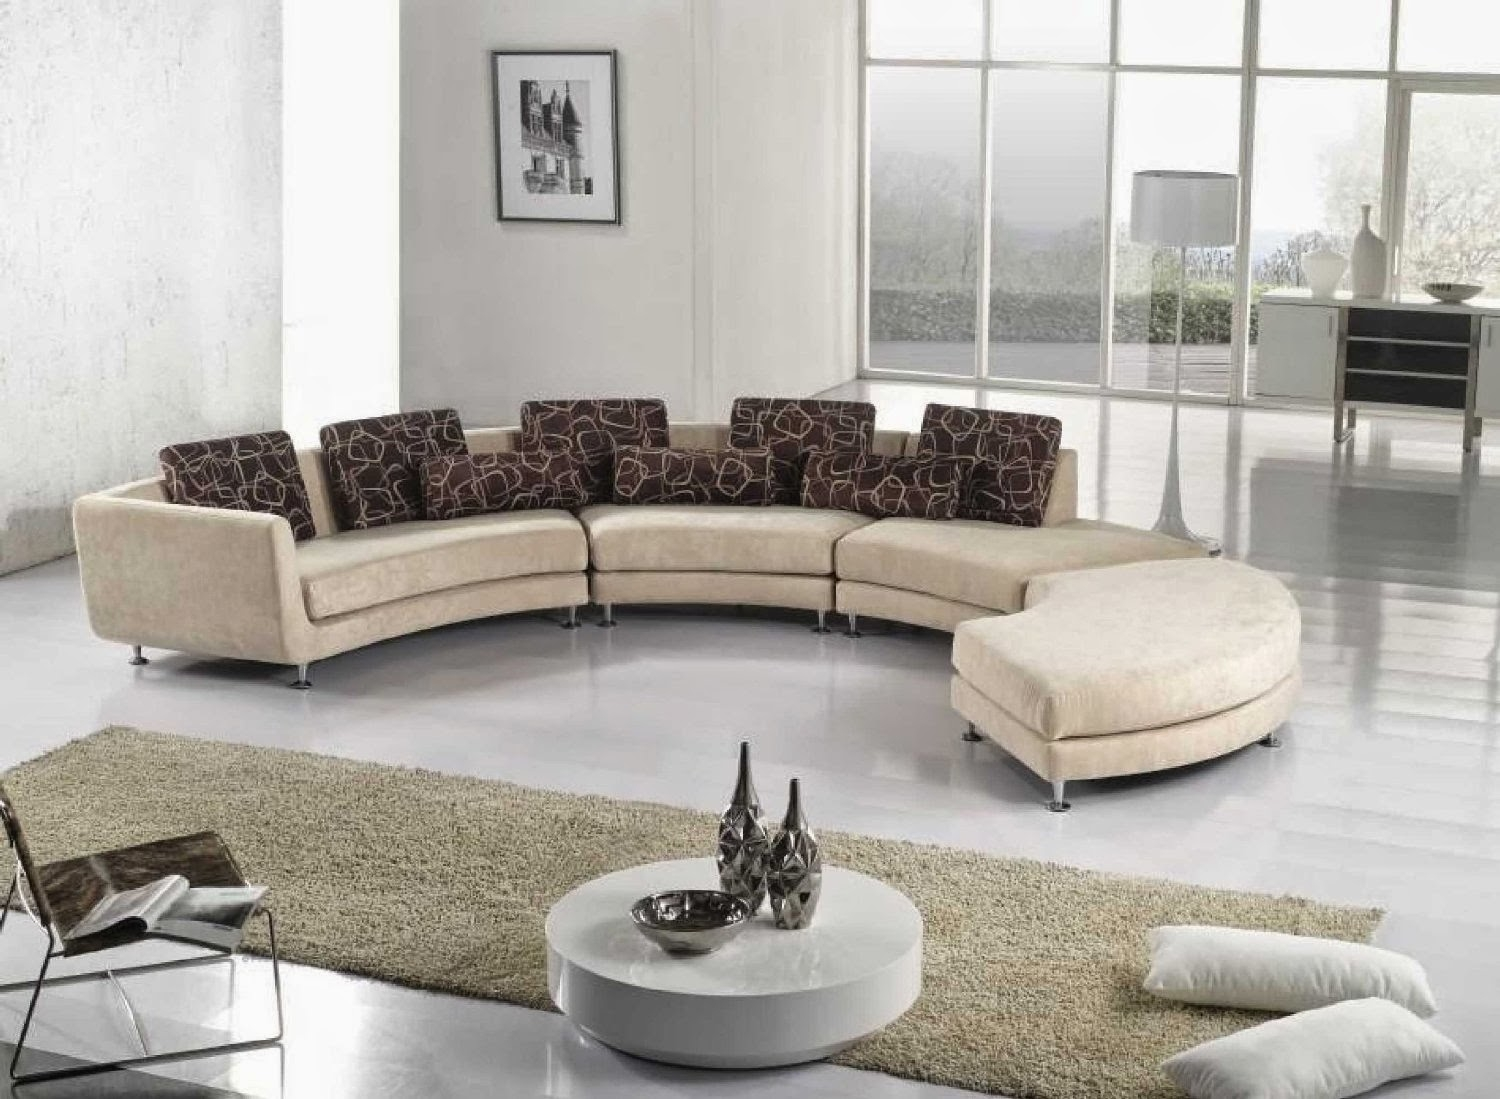 Curved Sofa Curved Sectional Sofa Intended For Contemporary Curved Sofas (View 12 of 12)